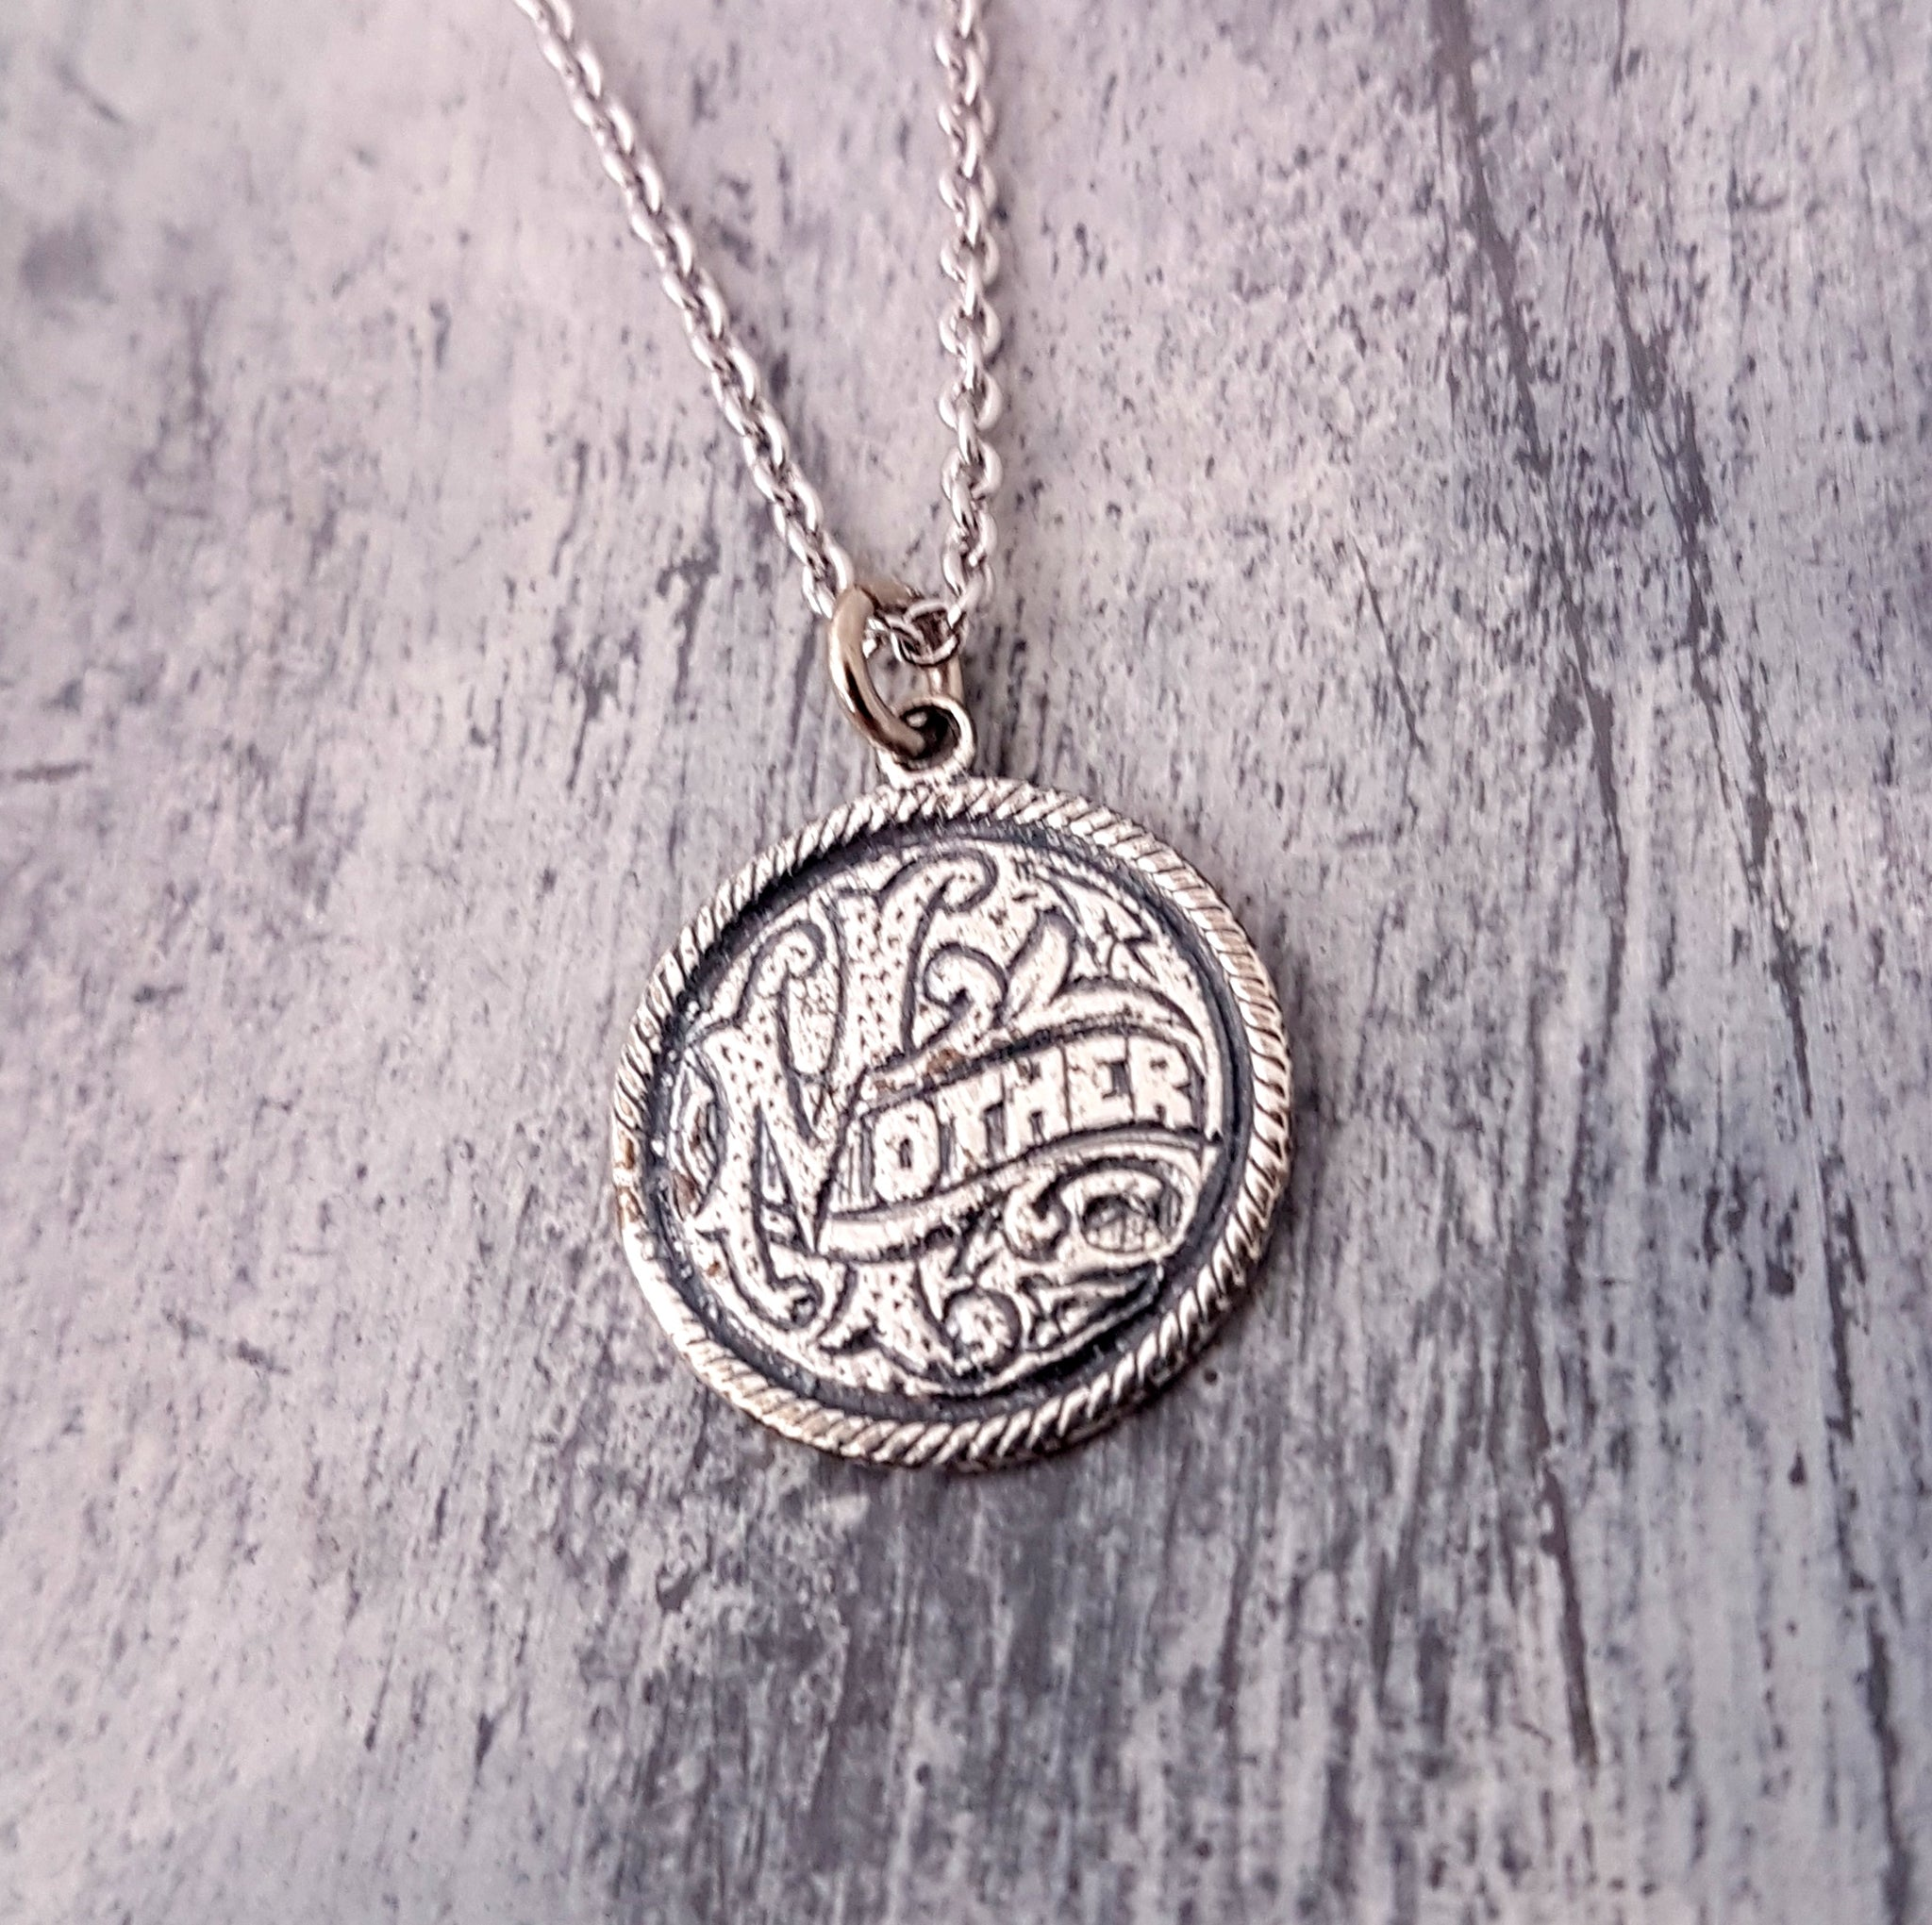 Silver Mother Love Token Necklace - Gwen Delicious Jewelry Designs